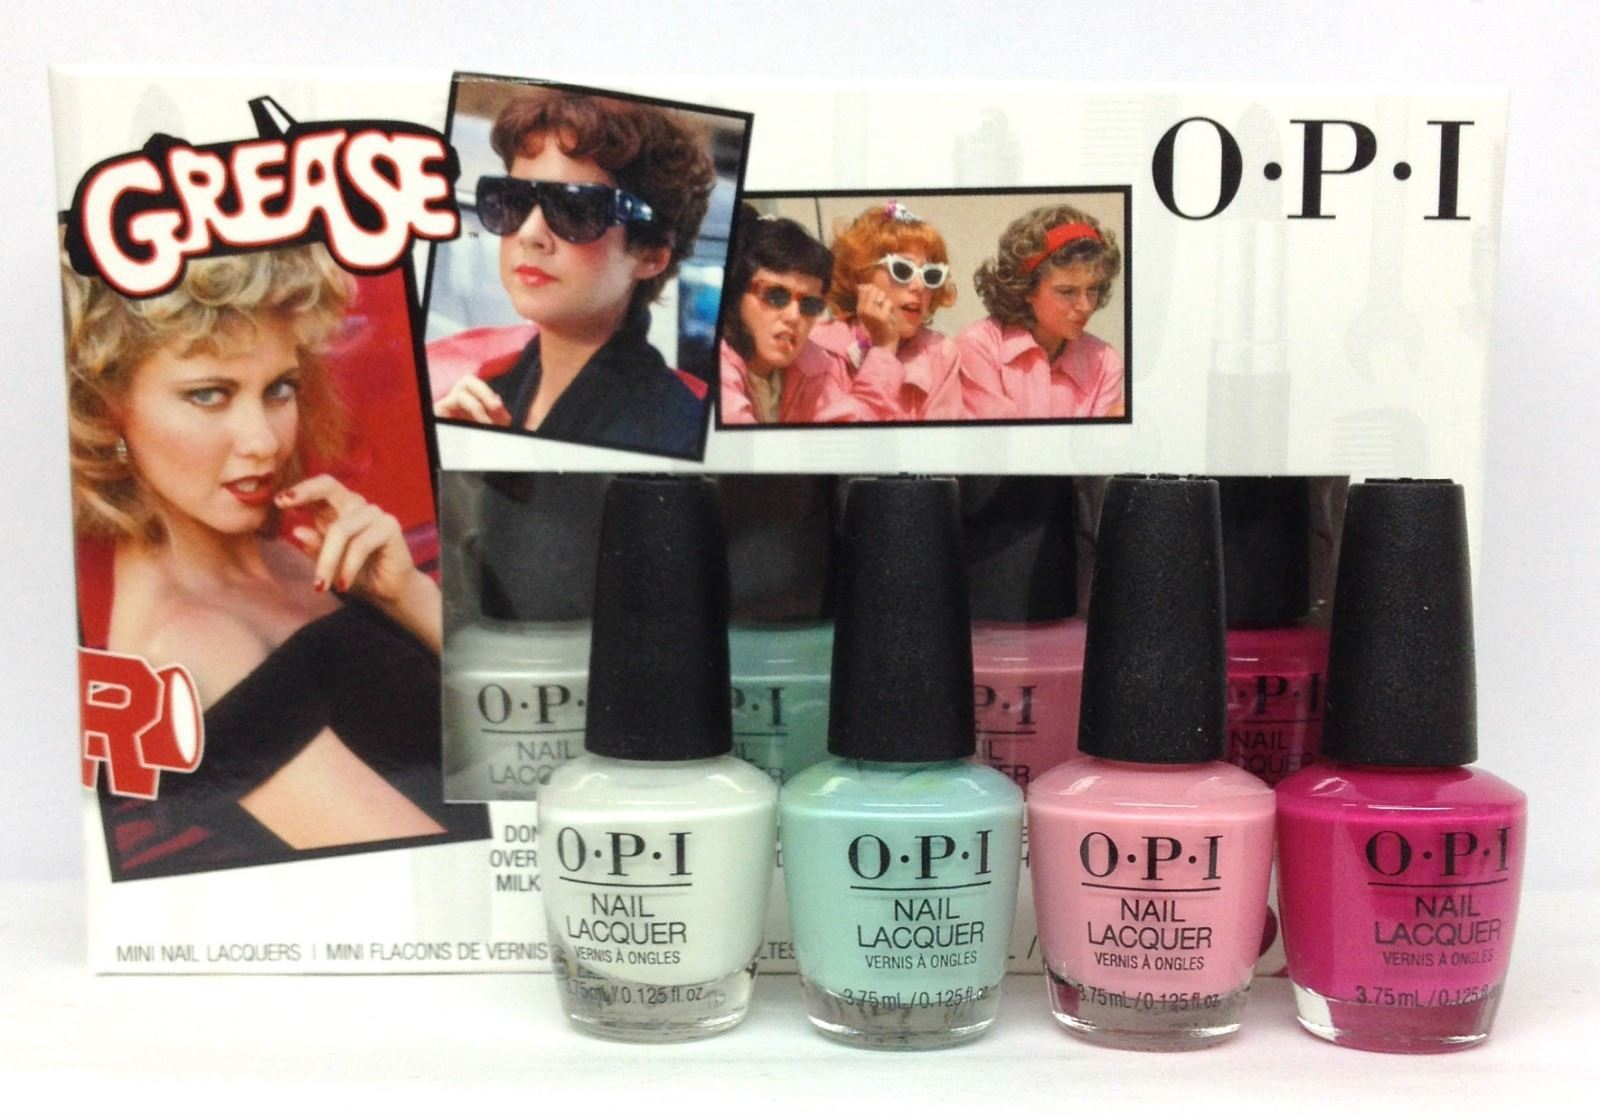 About Opi Nail Lacquer- HireAbility